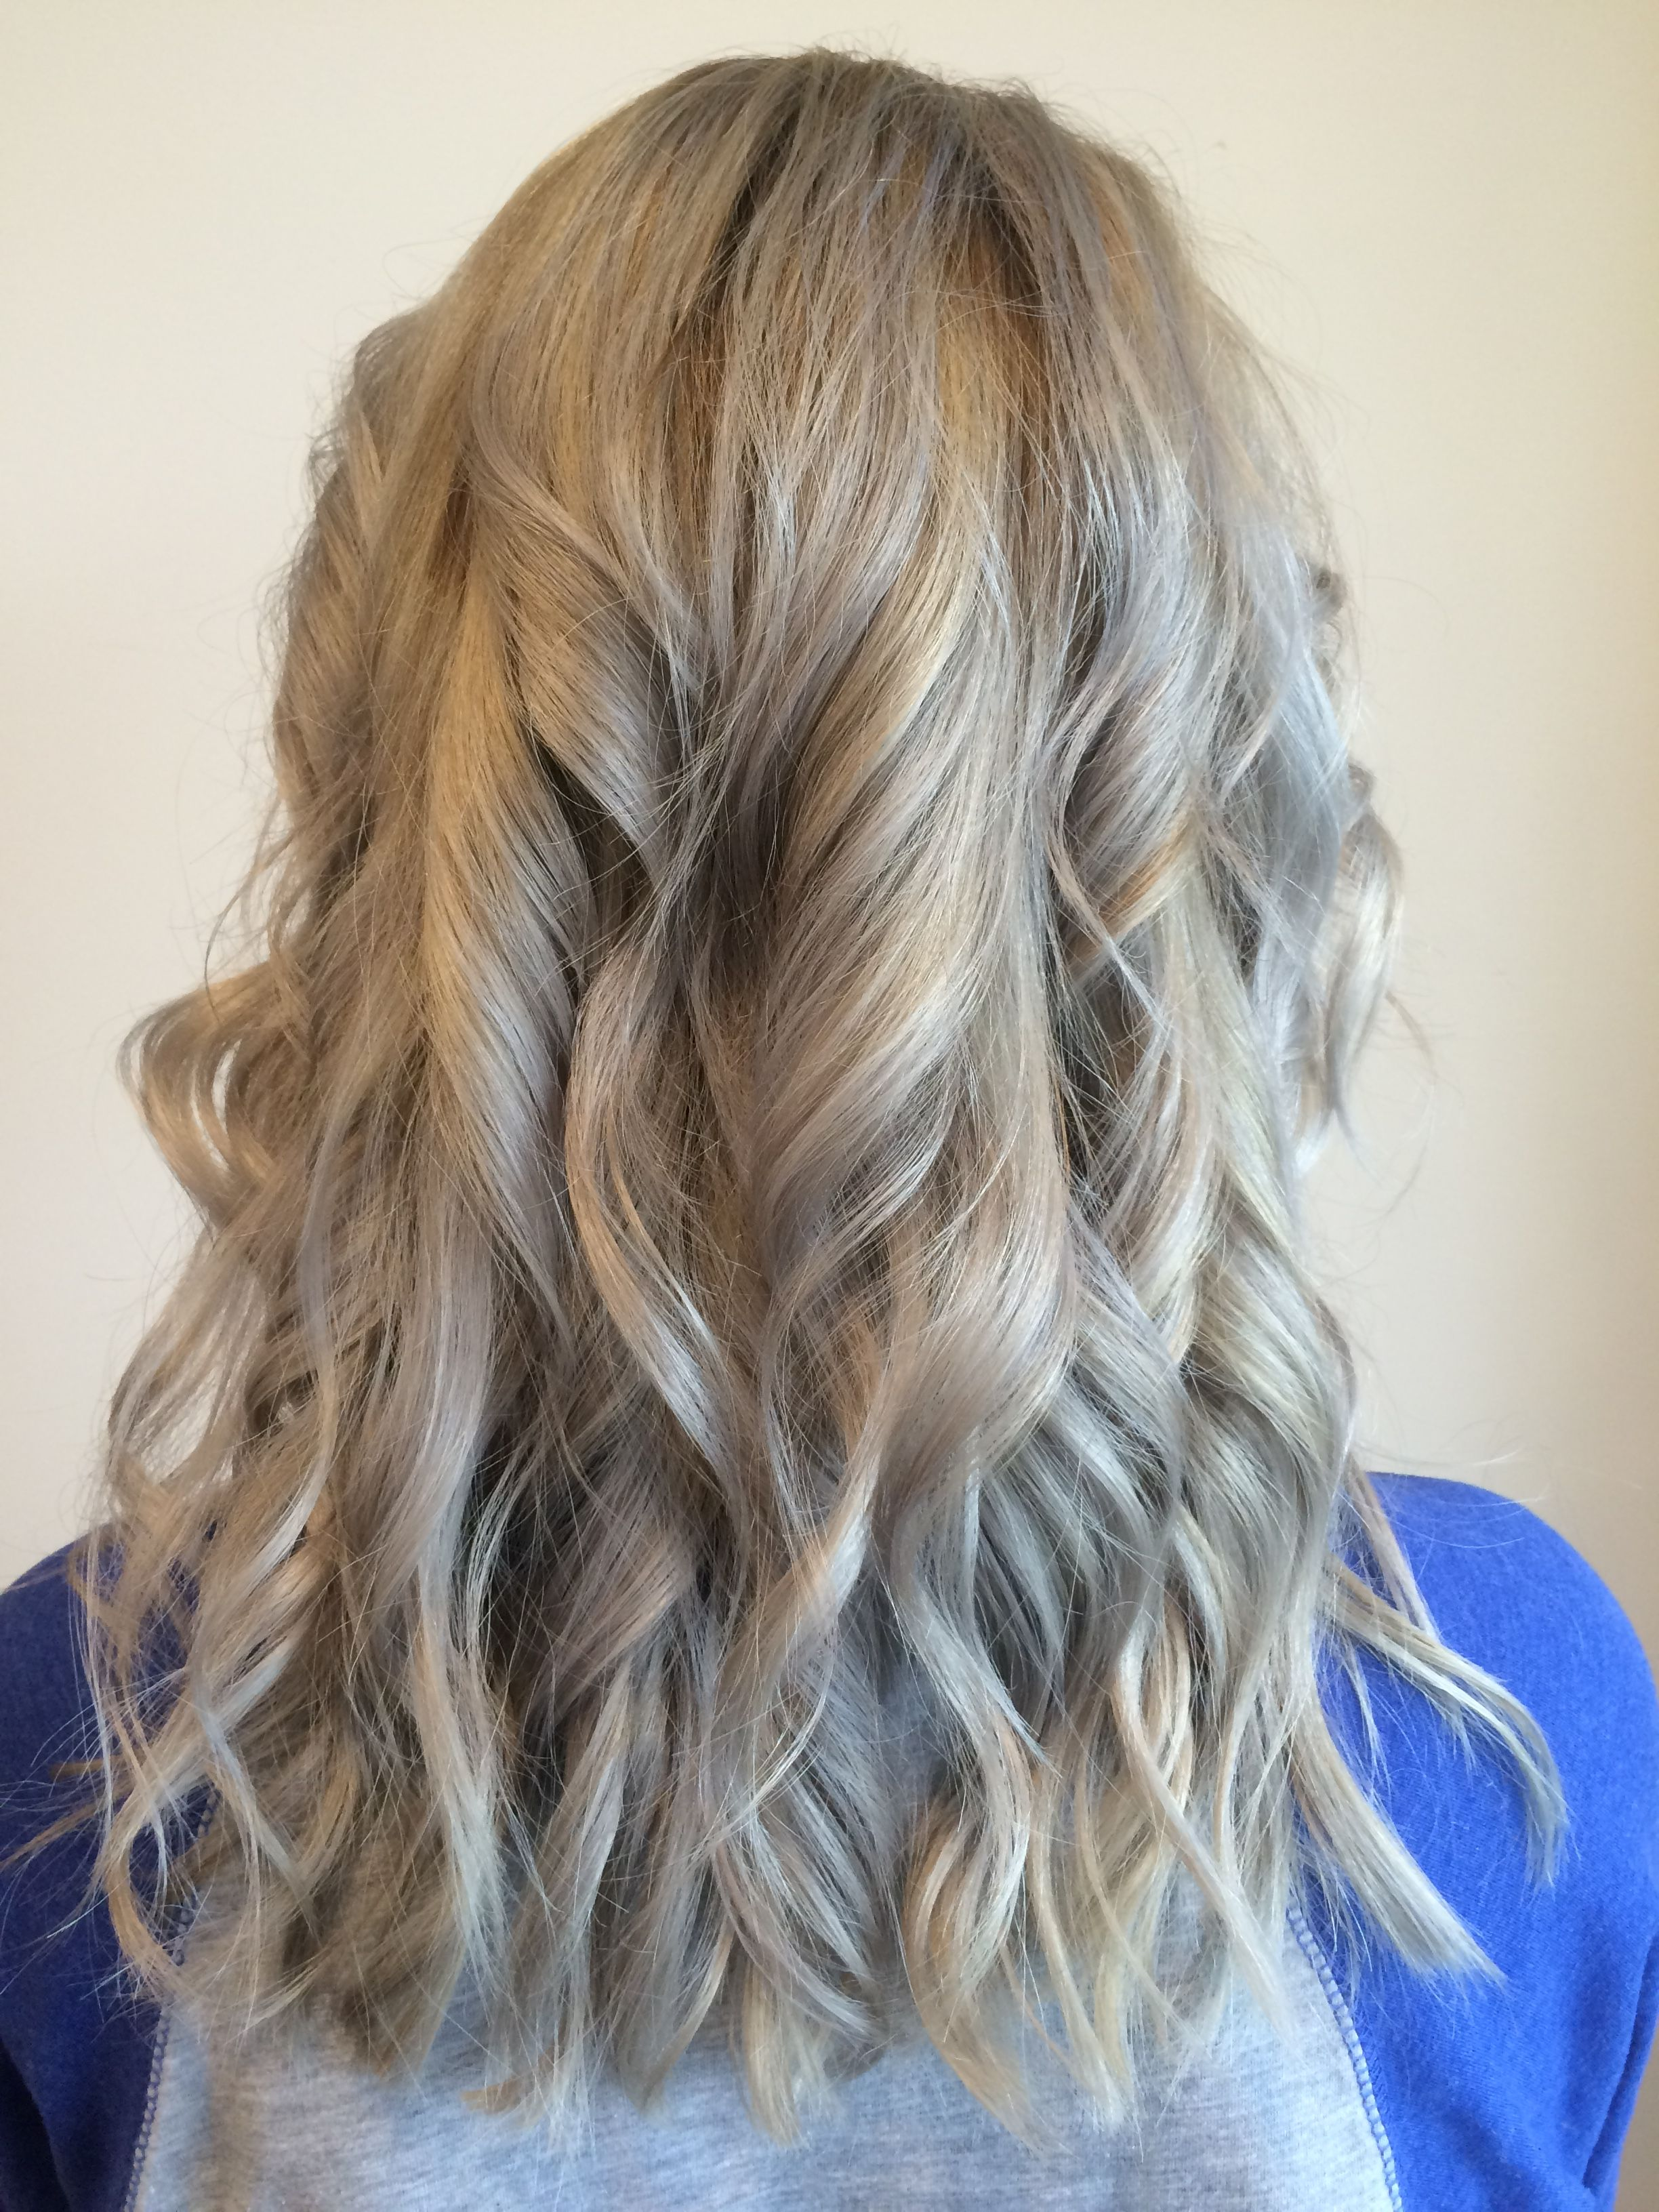 Hair Color Silver Toner With Low Light Natural Take On Blue Silver Hair Silver Hair Long Hair Styles Silver Toner